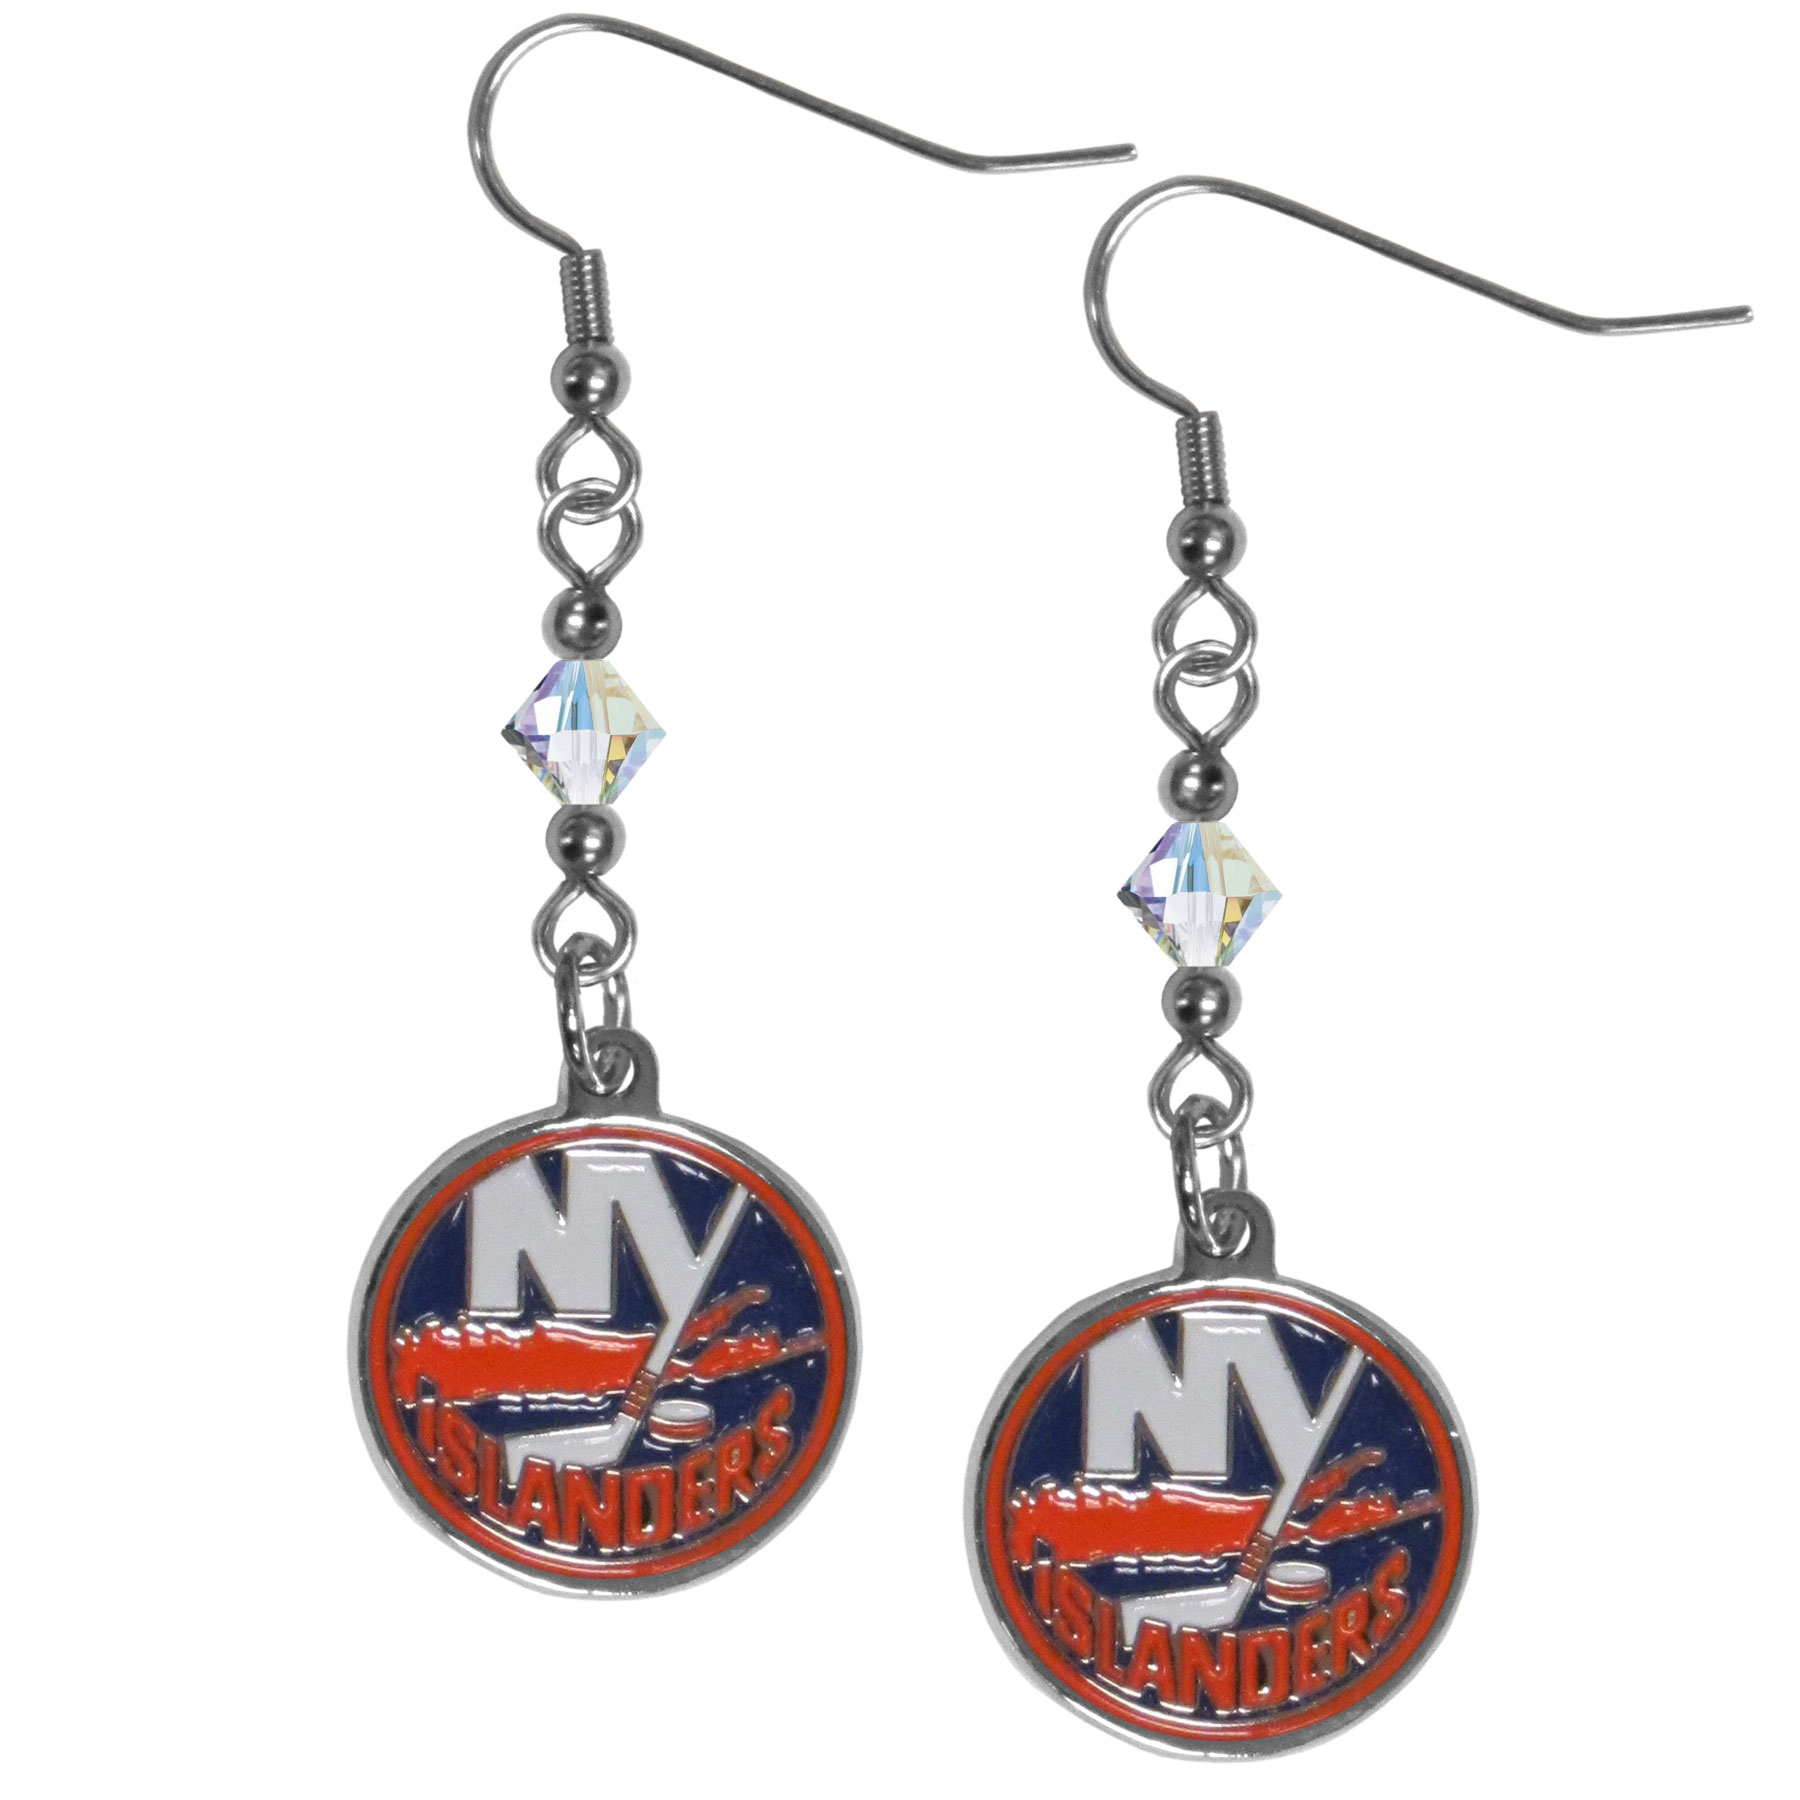 New York Islanders® Crystal Dangle Earrings - Our crystal dangle earrings are the perfect accessory for your game day outfit! The earrings are approximately 1.5 inches long and feature an iridescent crystal bead and nickel free chrome New York Islanders® charm on nickel free, hypoallergenic fishhook posts.